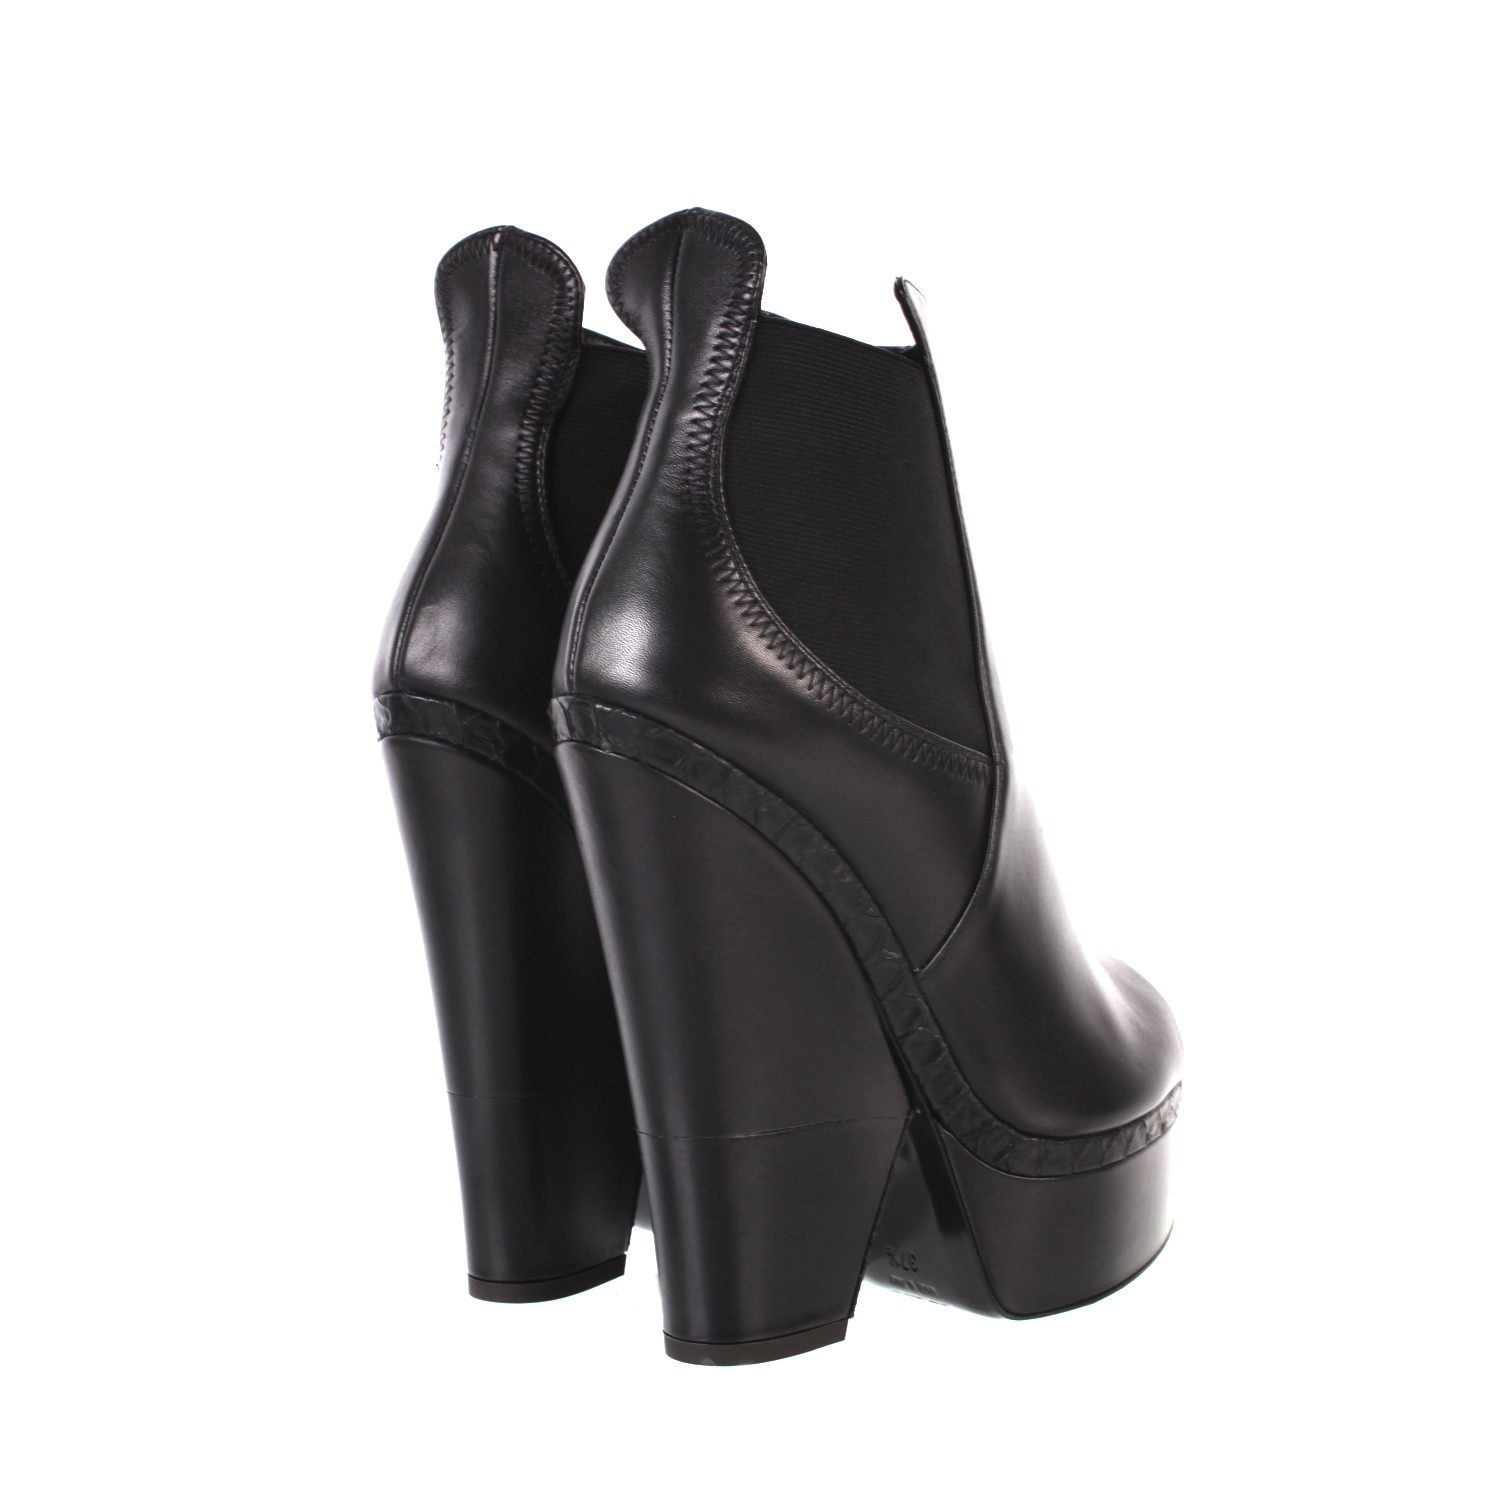 giuseppe zanotti 120mm leather biker open toe boots